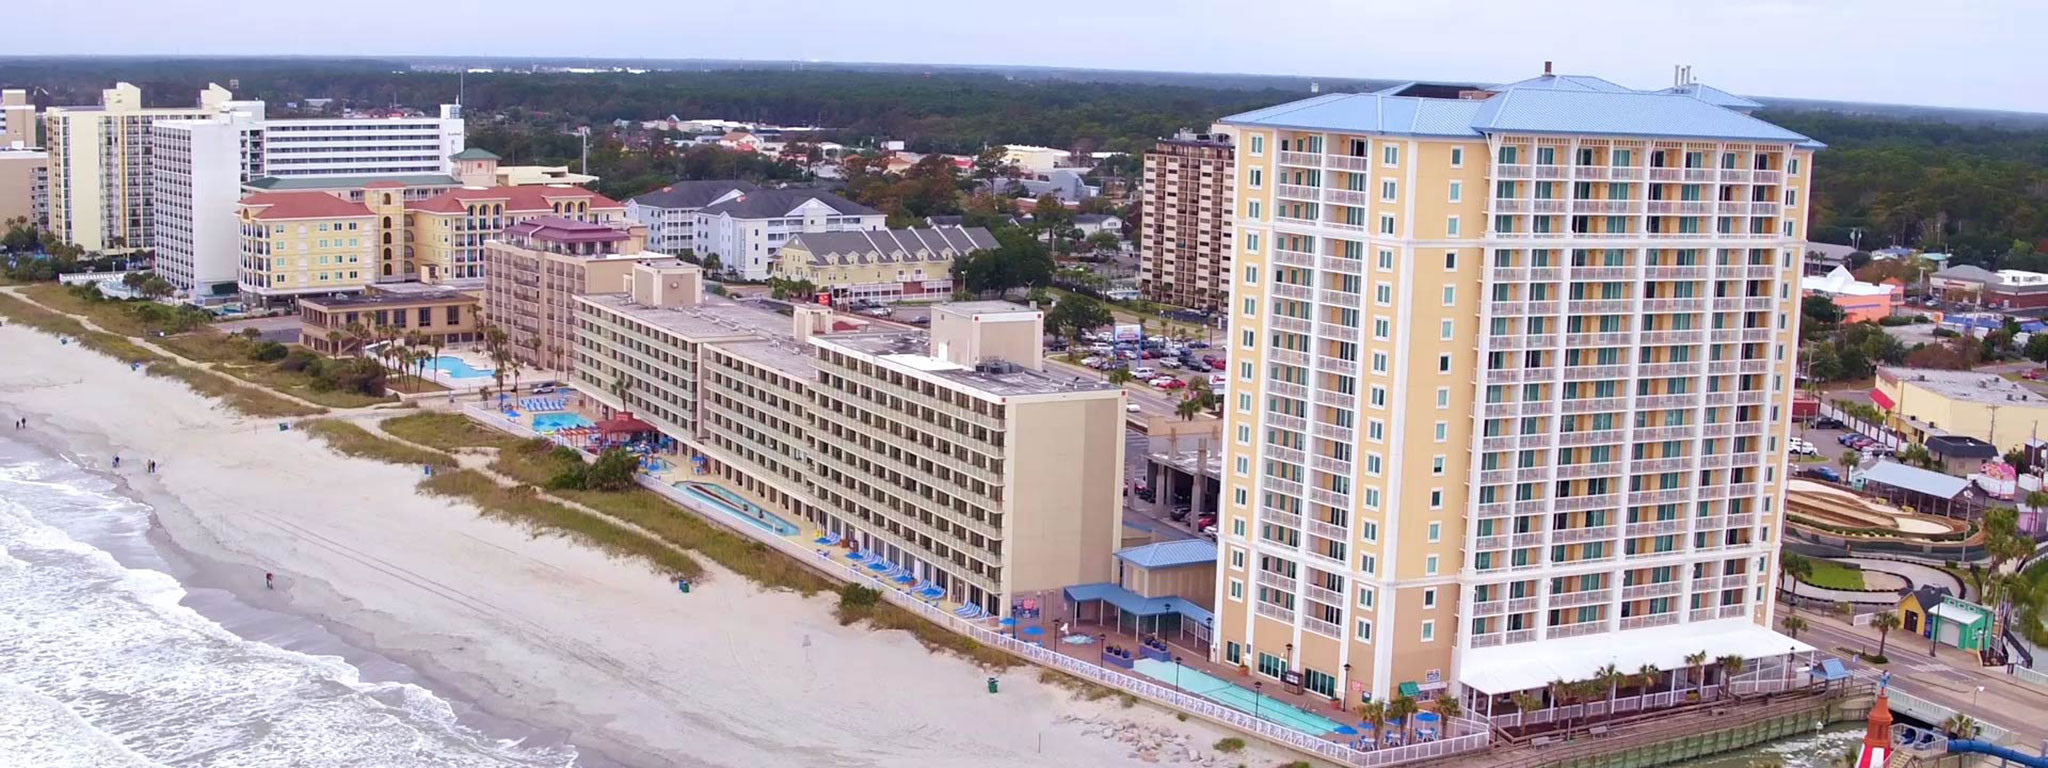 Westgate Myrtle Beach Oceanfront Resort provides spacious accommodations, fun, family-friendly recreational activities, and convenient access to famous attractions in Myrtle Beach, South Carolina - as well as beach-going adventure and aquatic fun!